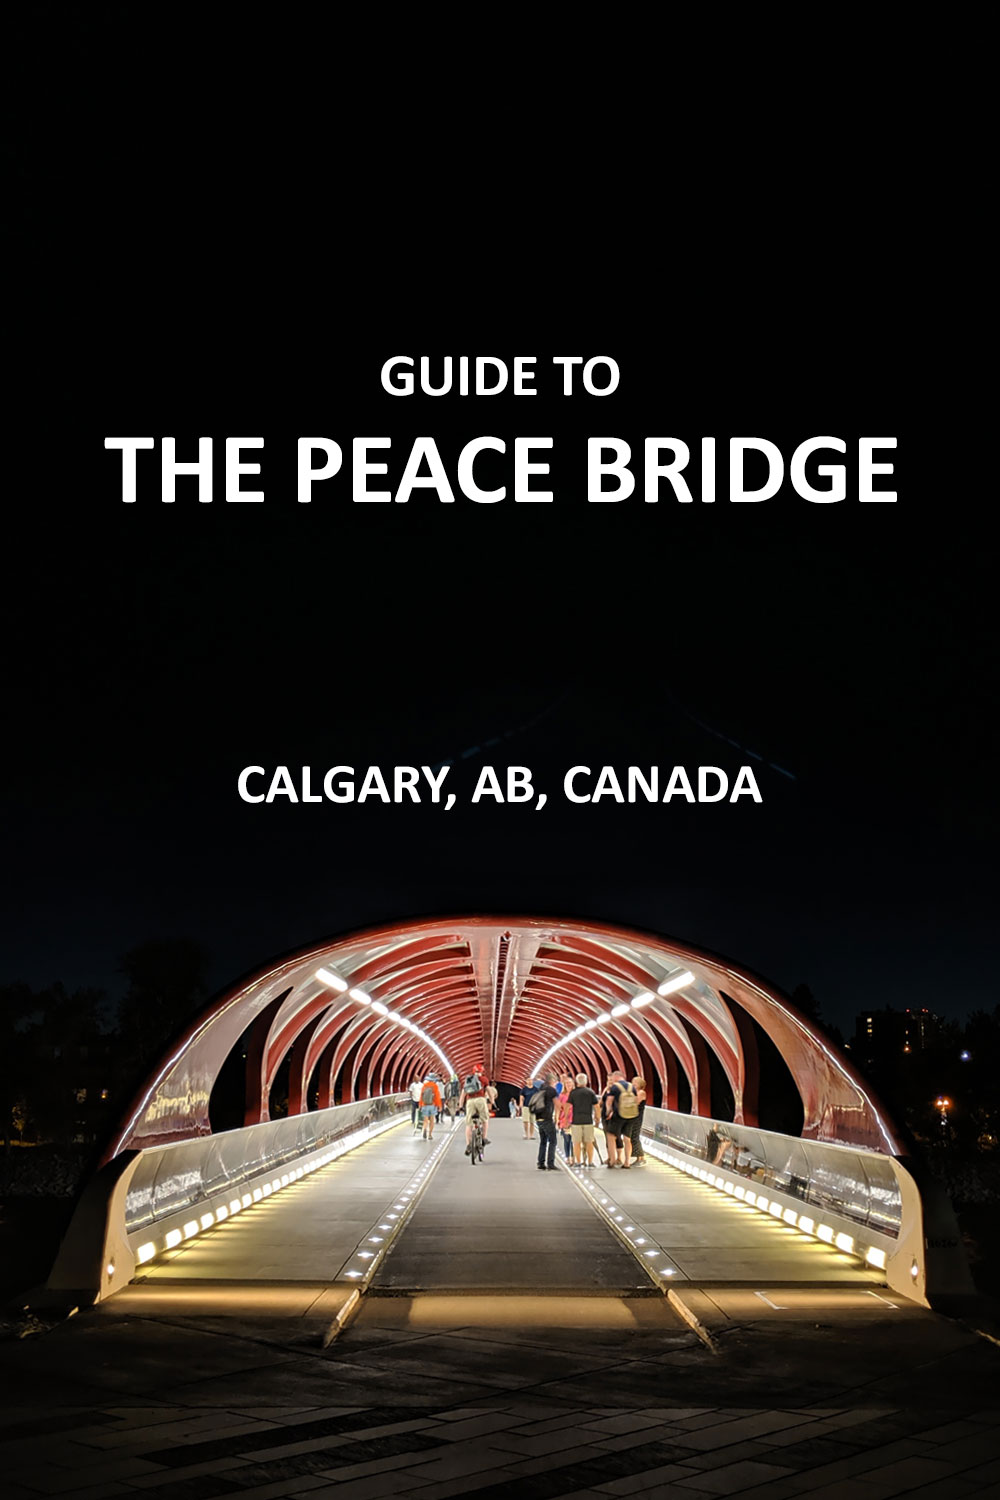 Guide to the peace bridge in Calgary, Alberta, Canada